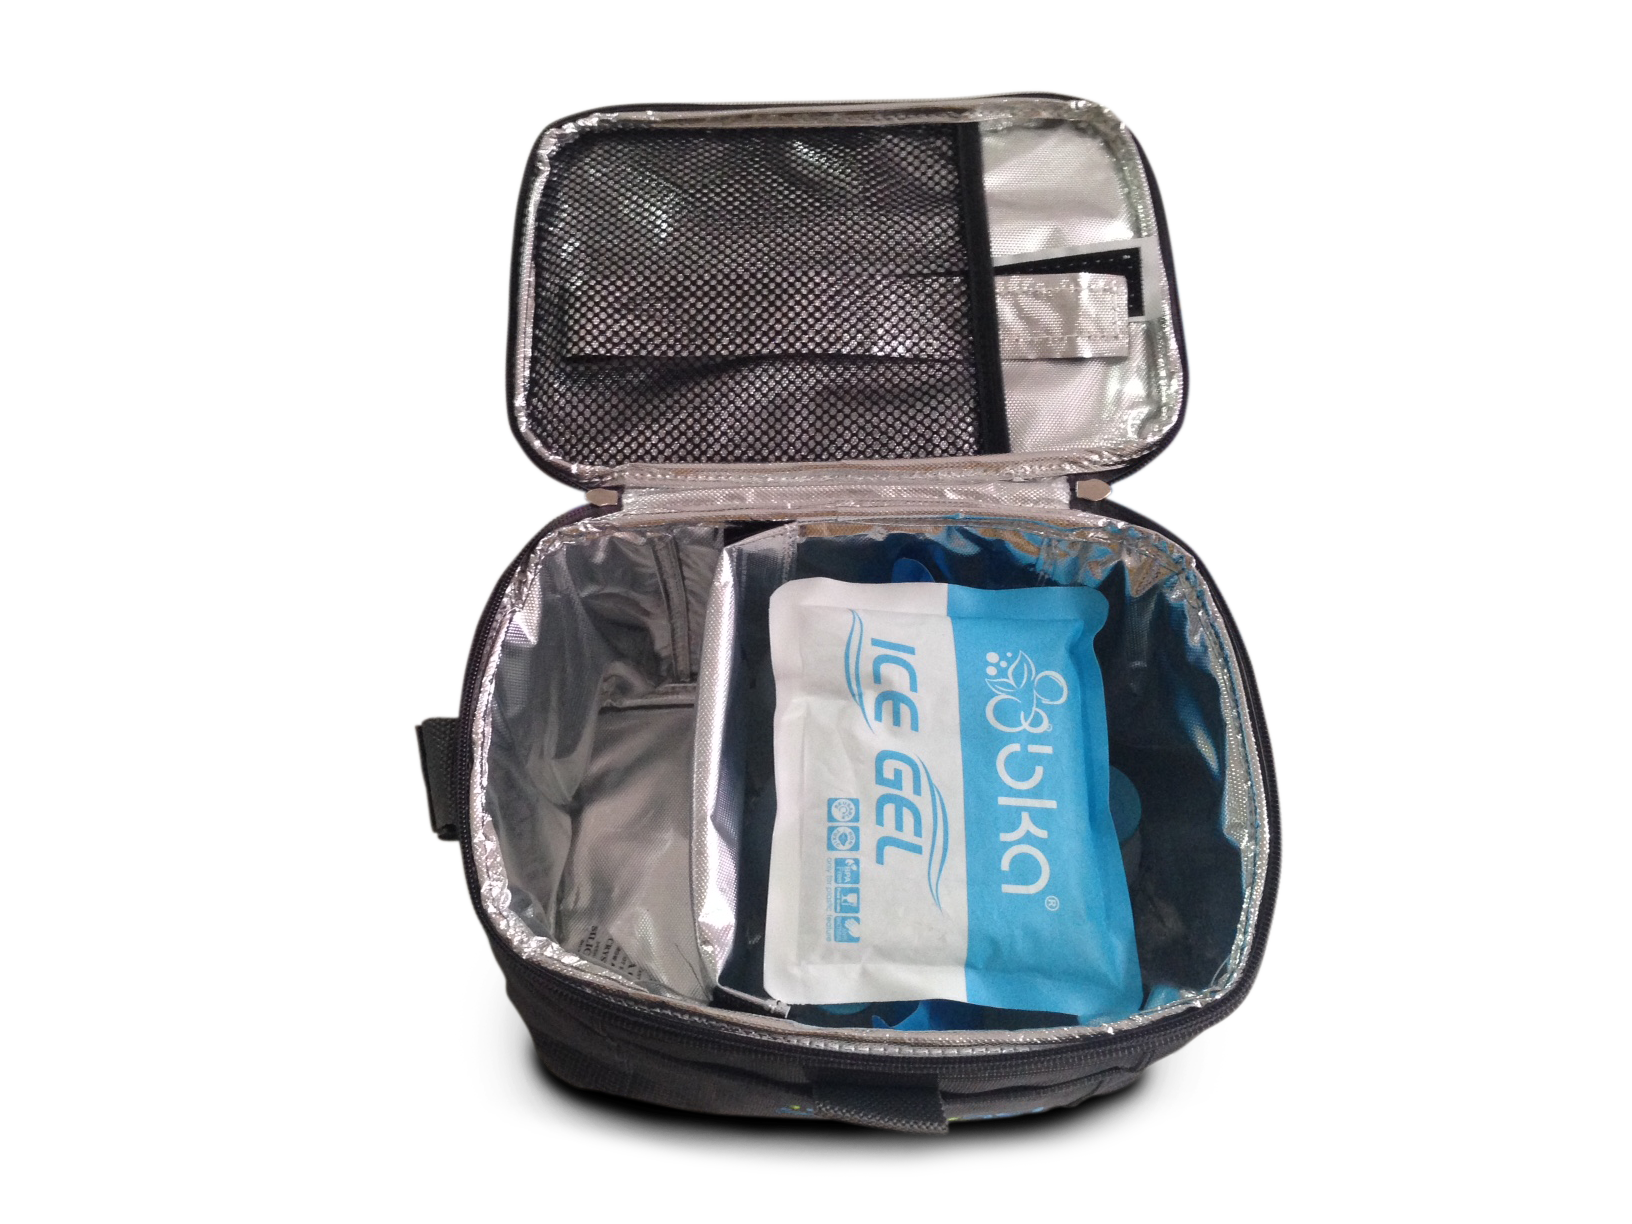 cooler bag isi 6 botol kaca asi + 1 ice gel asi besar + 1 ice gel sedang